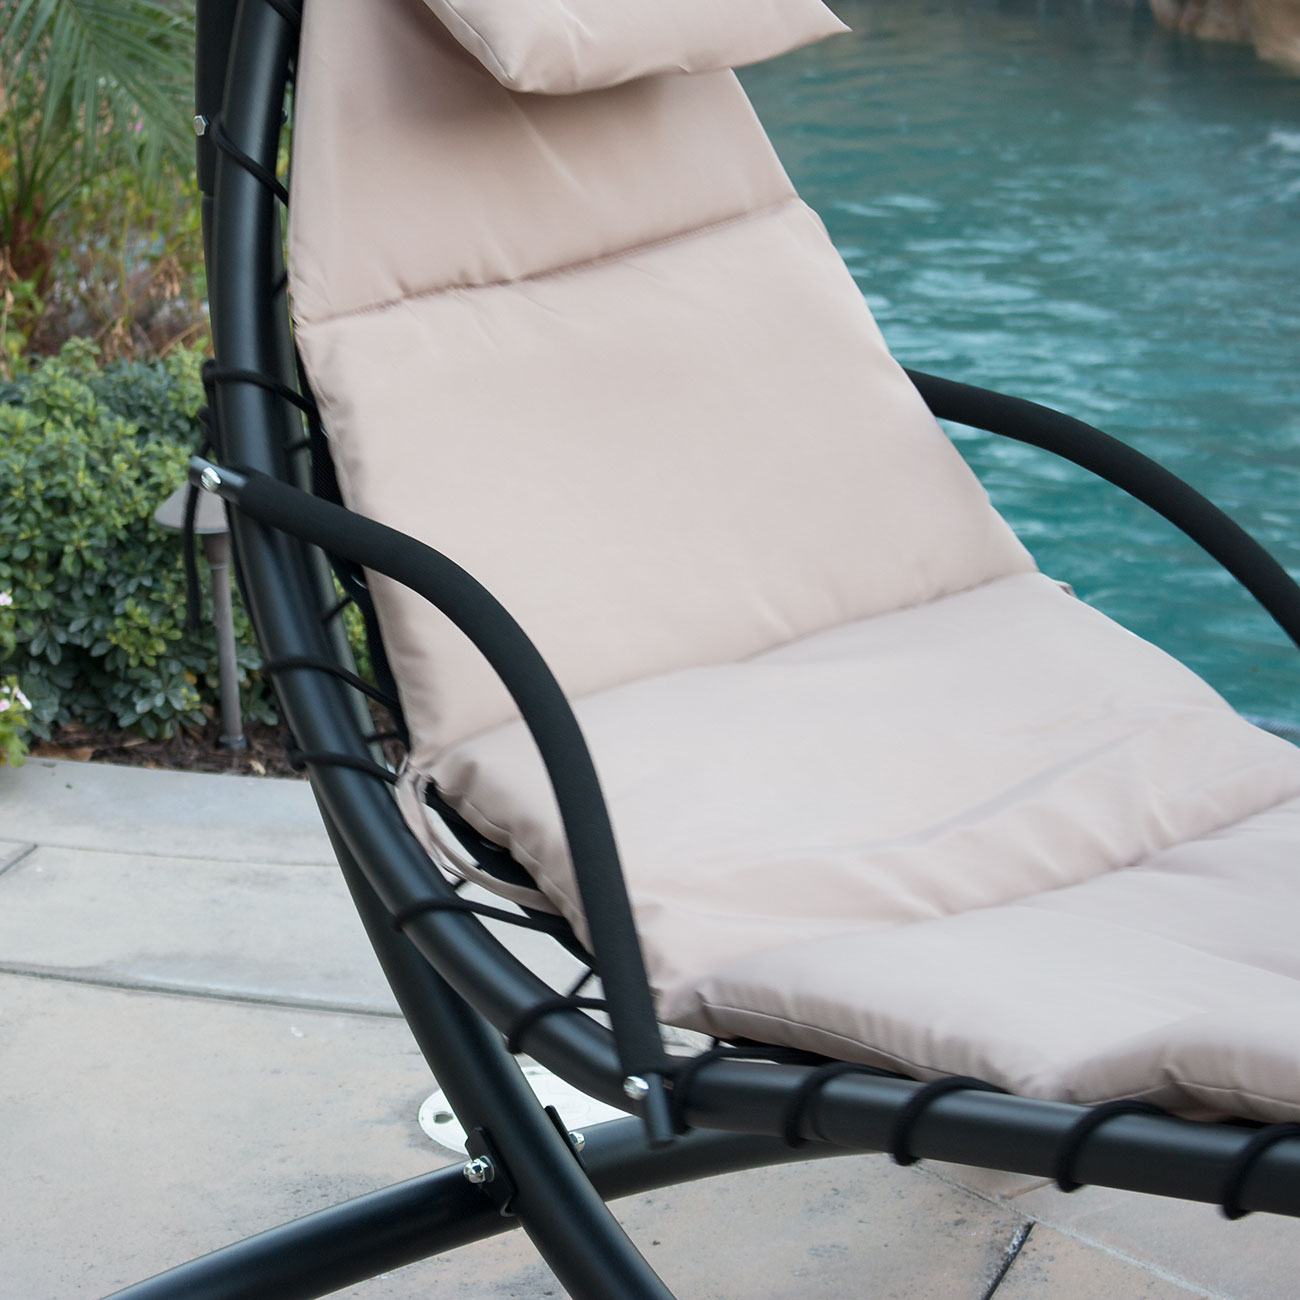 Hanging Helicopter dream Lounger Chair Arc Stand Swing ... on Hanging Helicopter Dream Lounger Chair id=71257